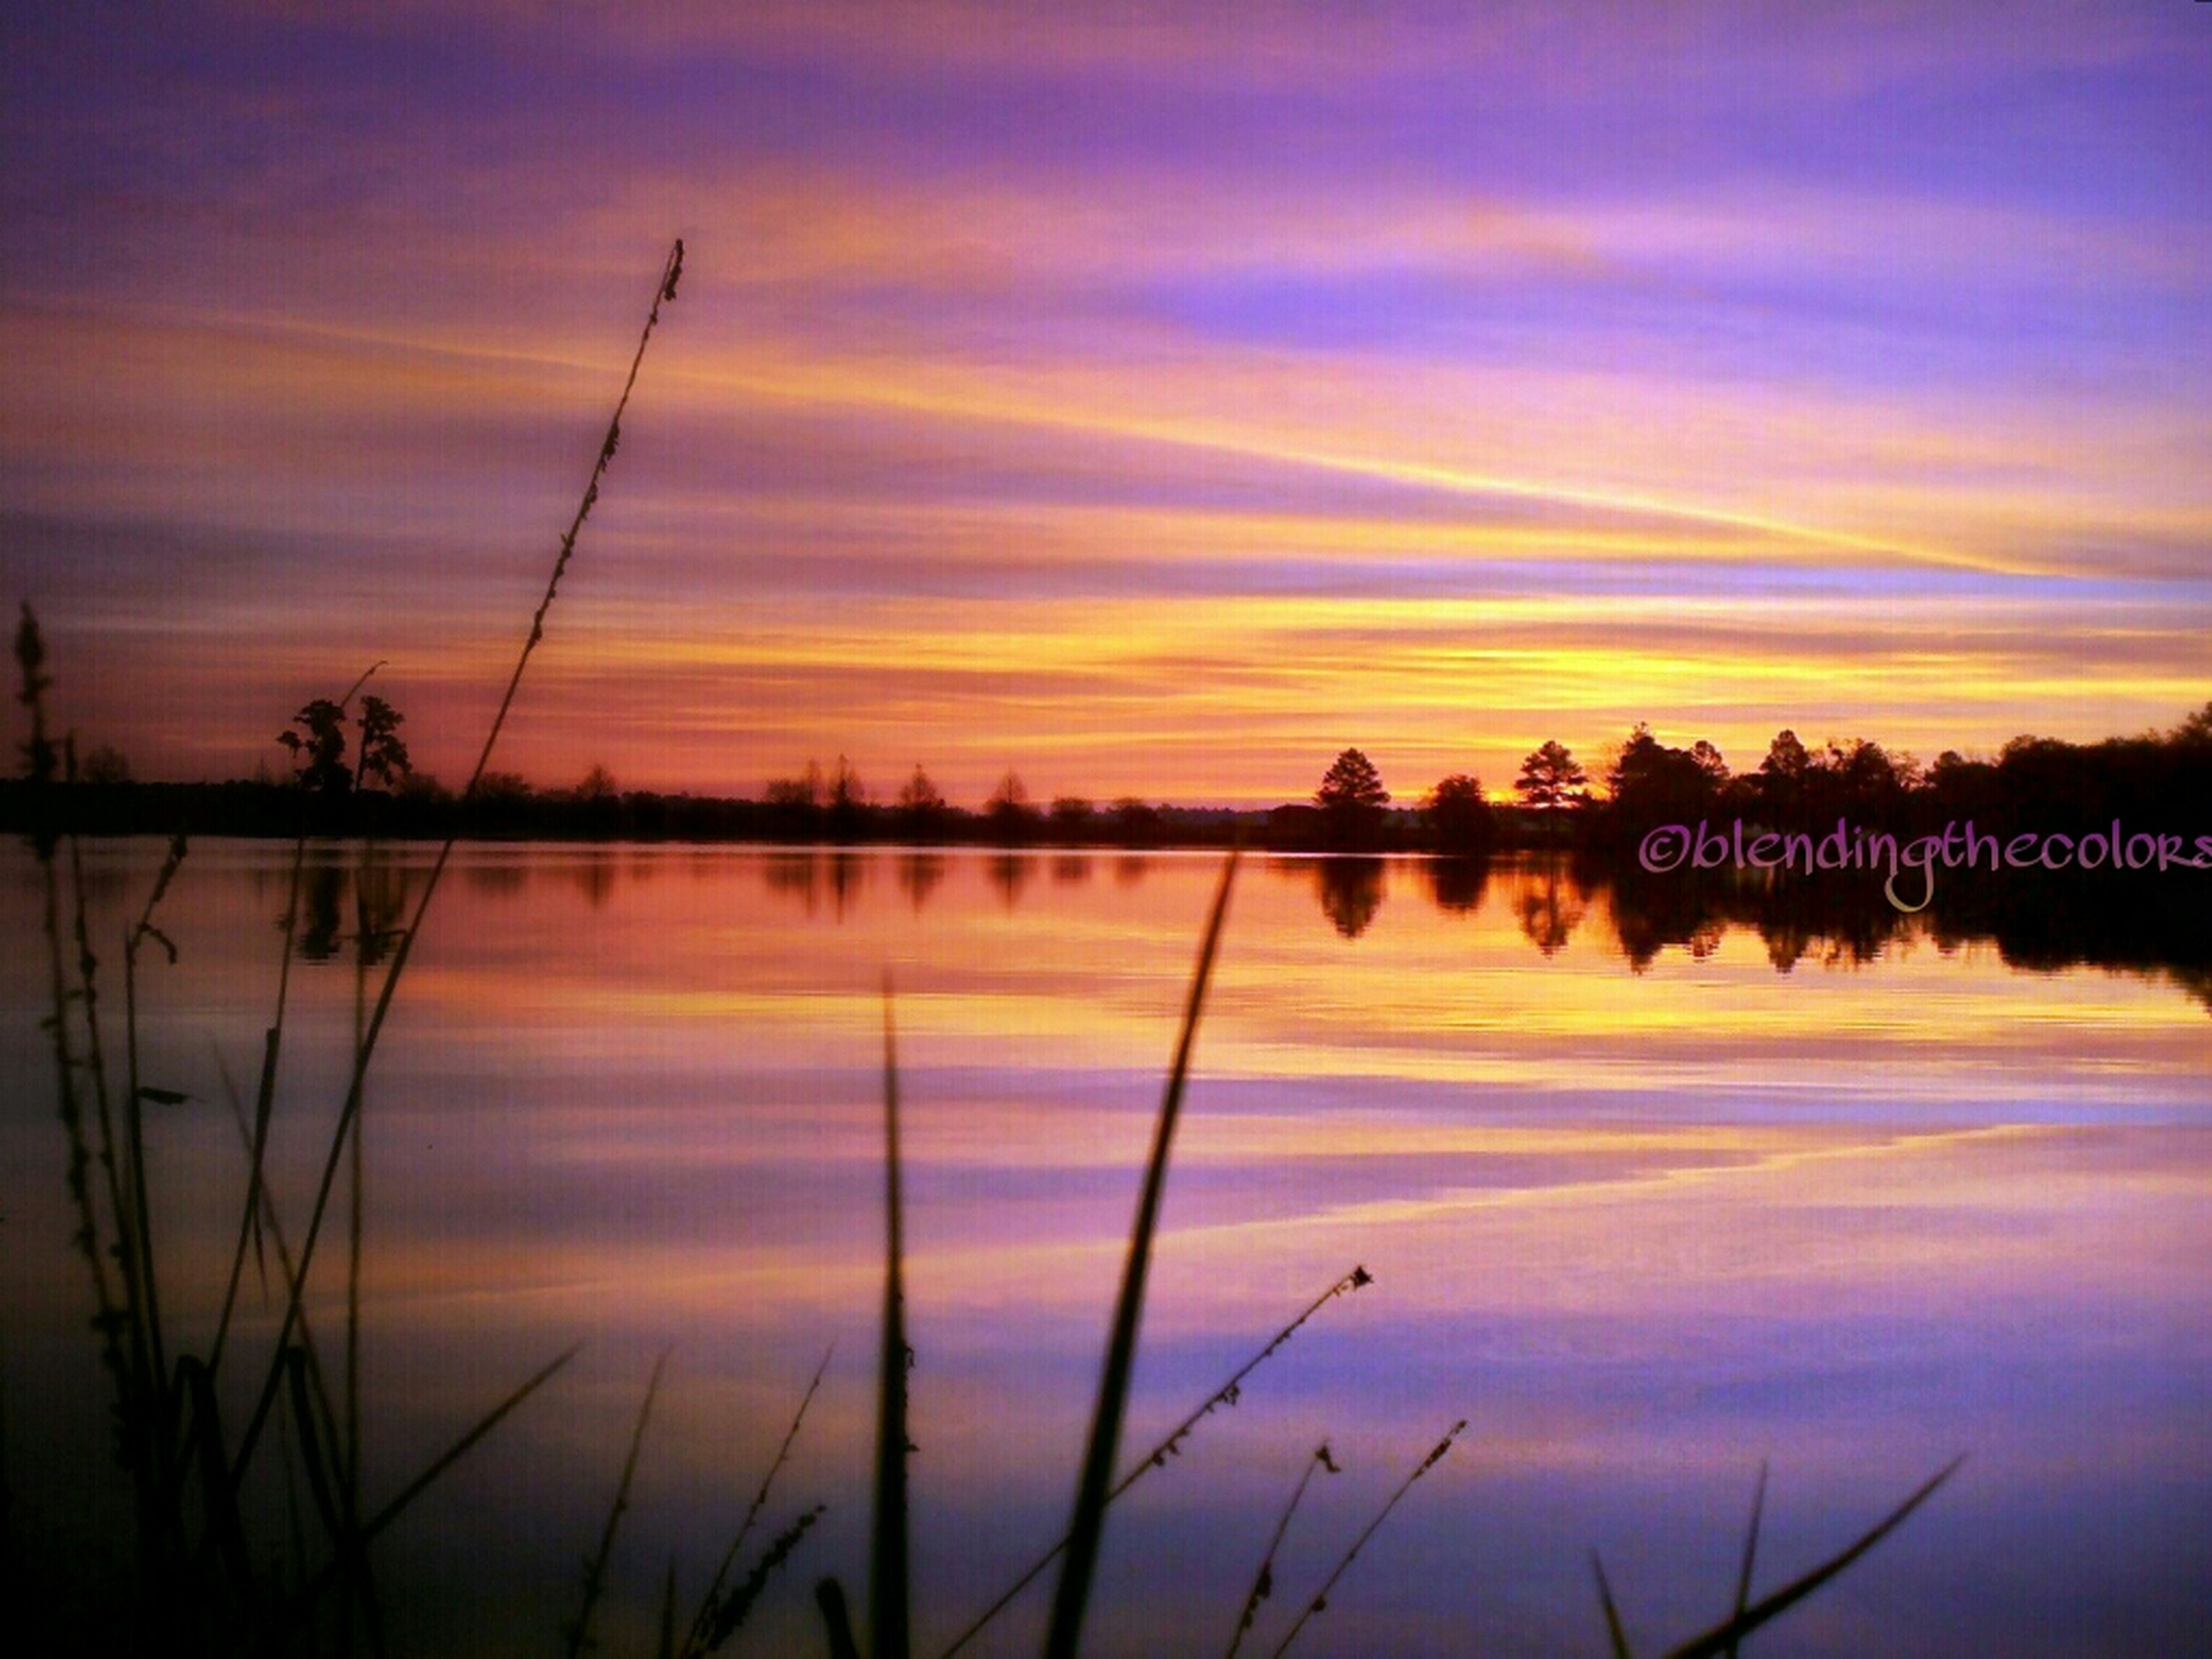 sunset, reflection, water, silhouette, lake, sky, tranquil scene, scenics, tranquility, beauty in nature, orange color, idyllic, nature, cloud - sky, standing water, cloud, dusk, calm, dramatic sky, majestic